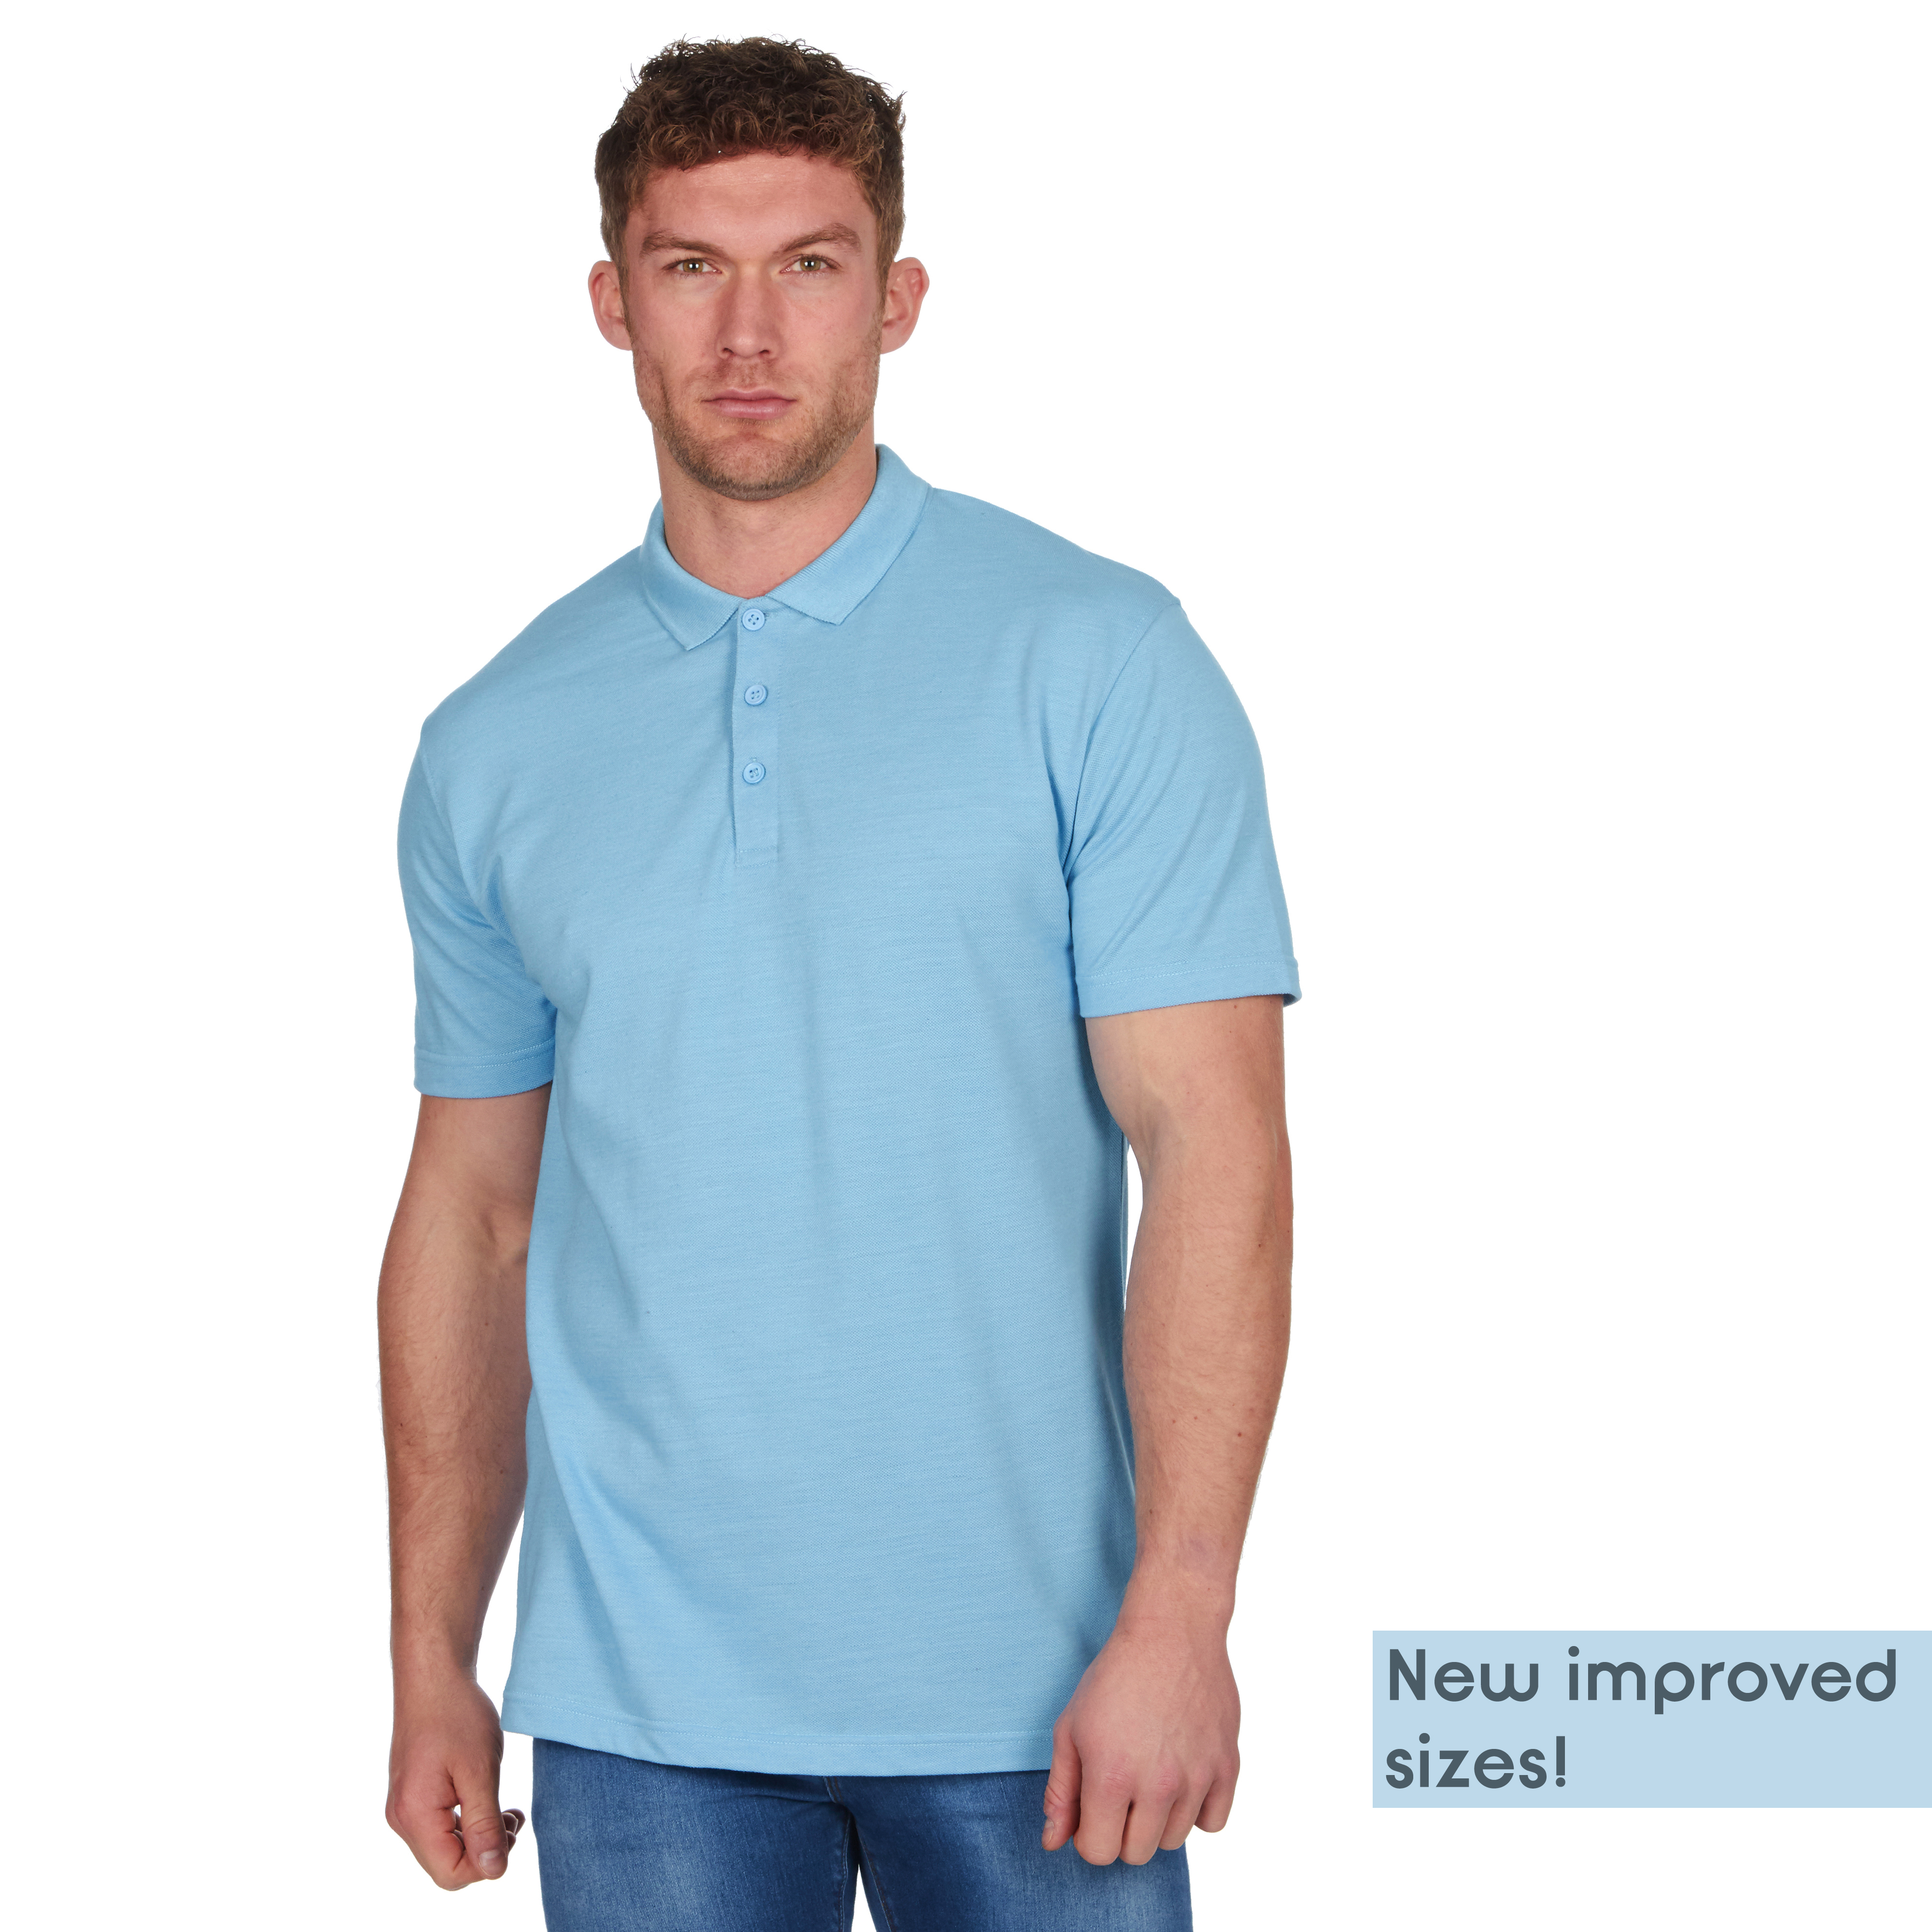 Mens-Classic-Polo-Top-Plus-Size-T-Shirt-Plain-Shirt-Big-And-Tall-Short-Sleeve thumbnail 49